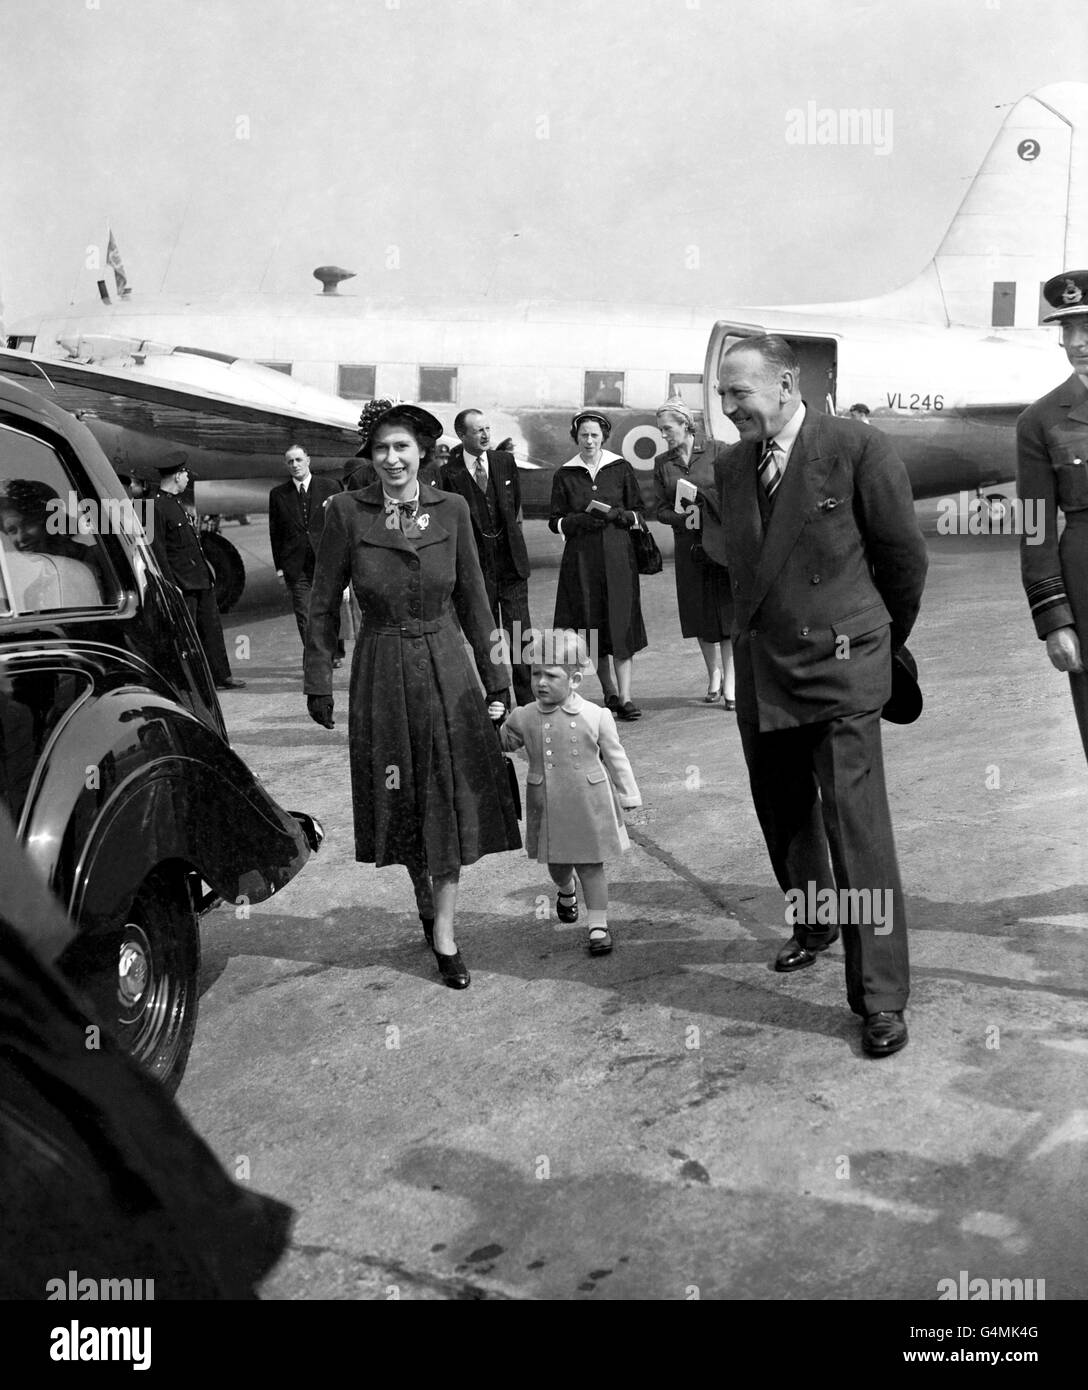 Royalty - Princess Elizabeth and Prince Charles - Heathrow Airport - Stock Image